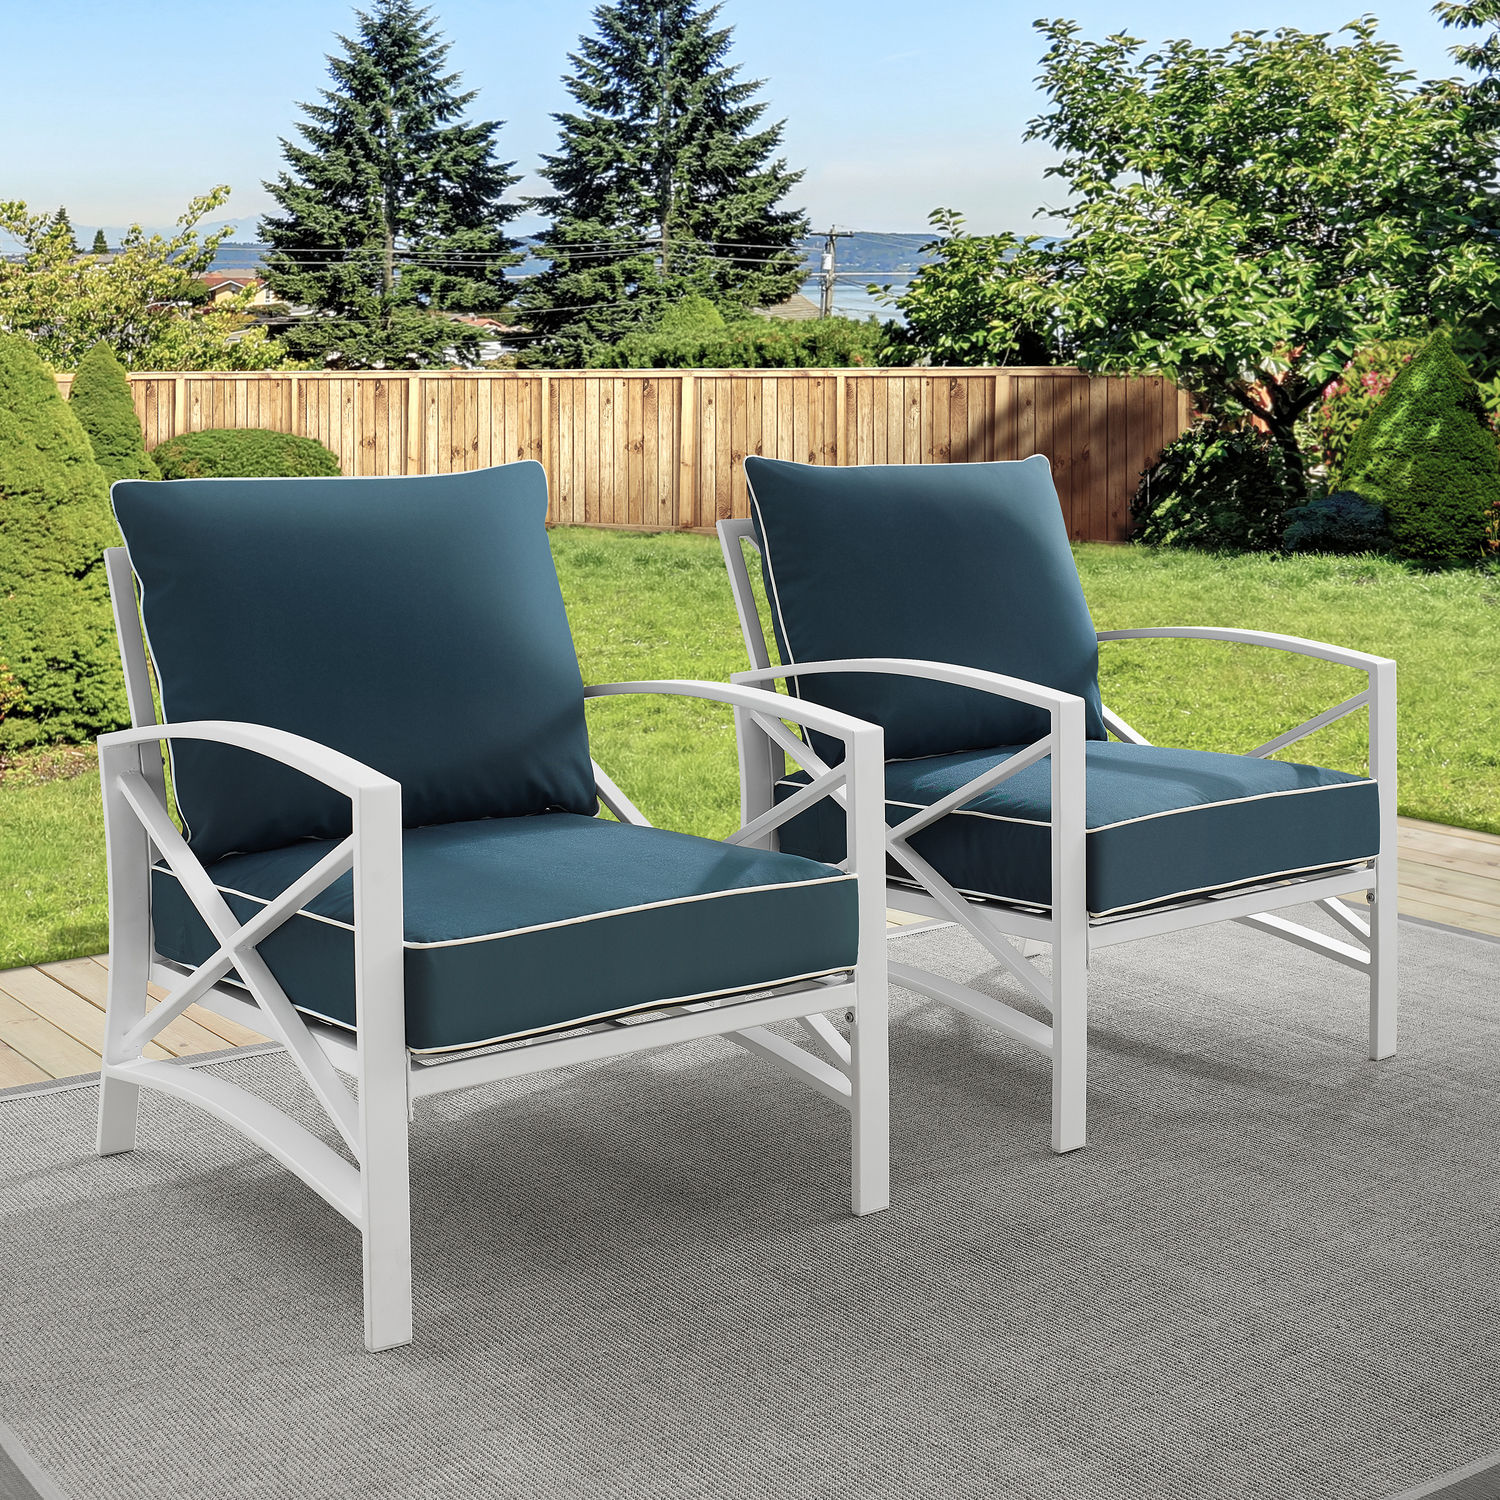 Outdoor Chair Set Clarion Set Of 2 Outdoor Chairs